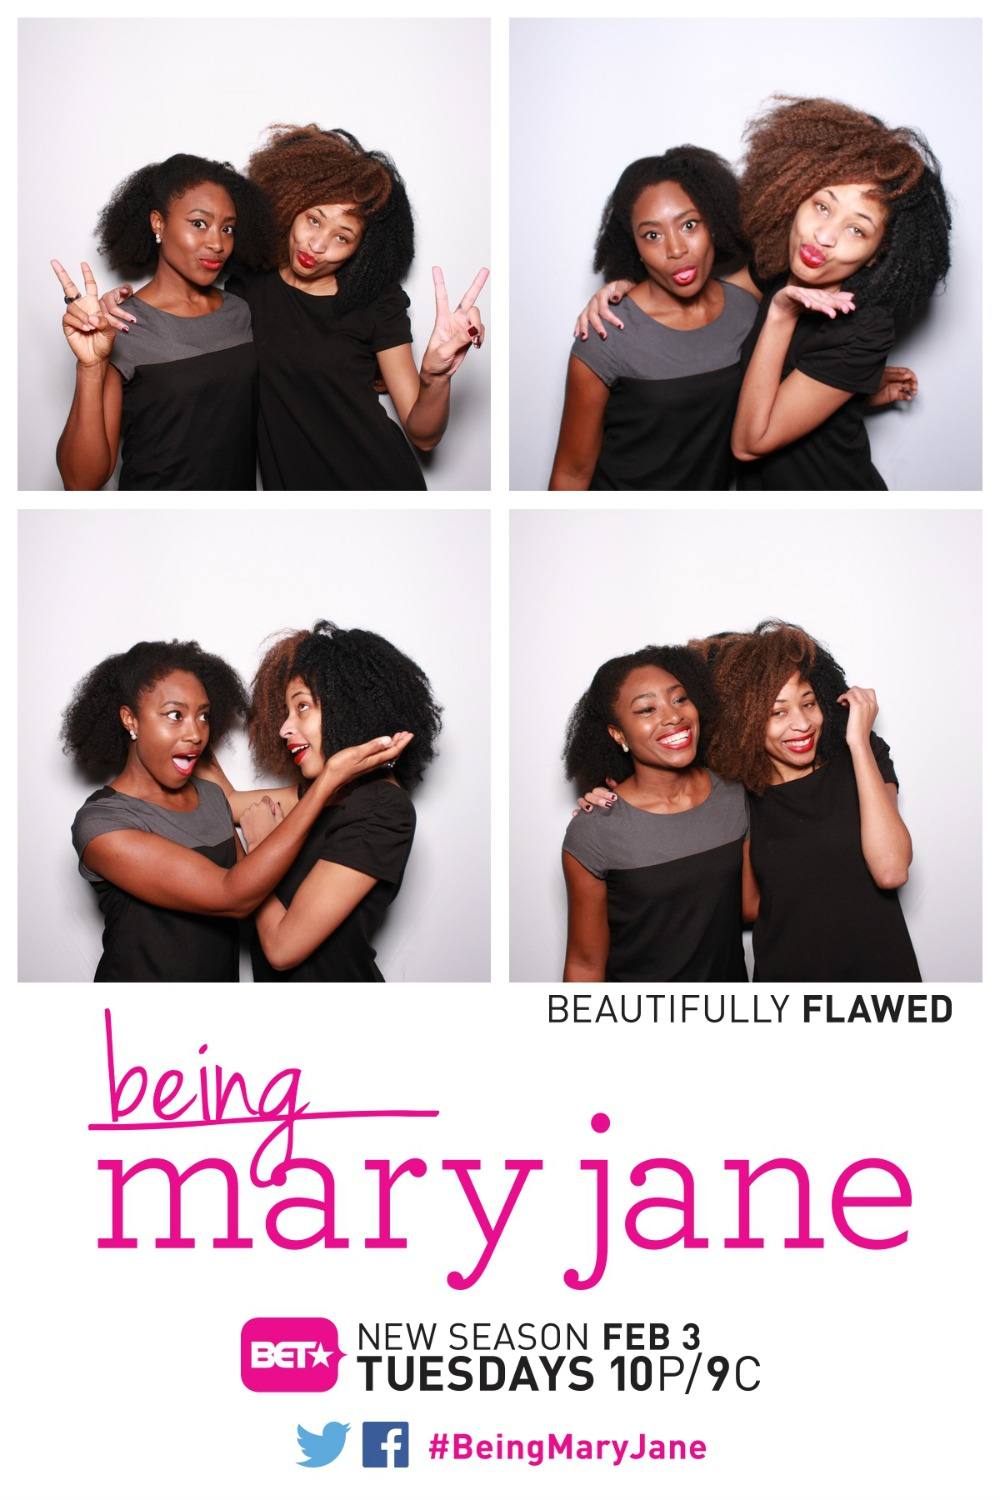 BEING-MARY-JANE-BET-SEASON-2-KIWI-THE-BEAUTY-BOOTH6